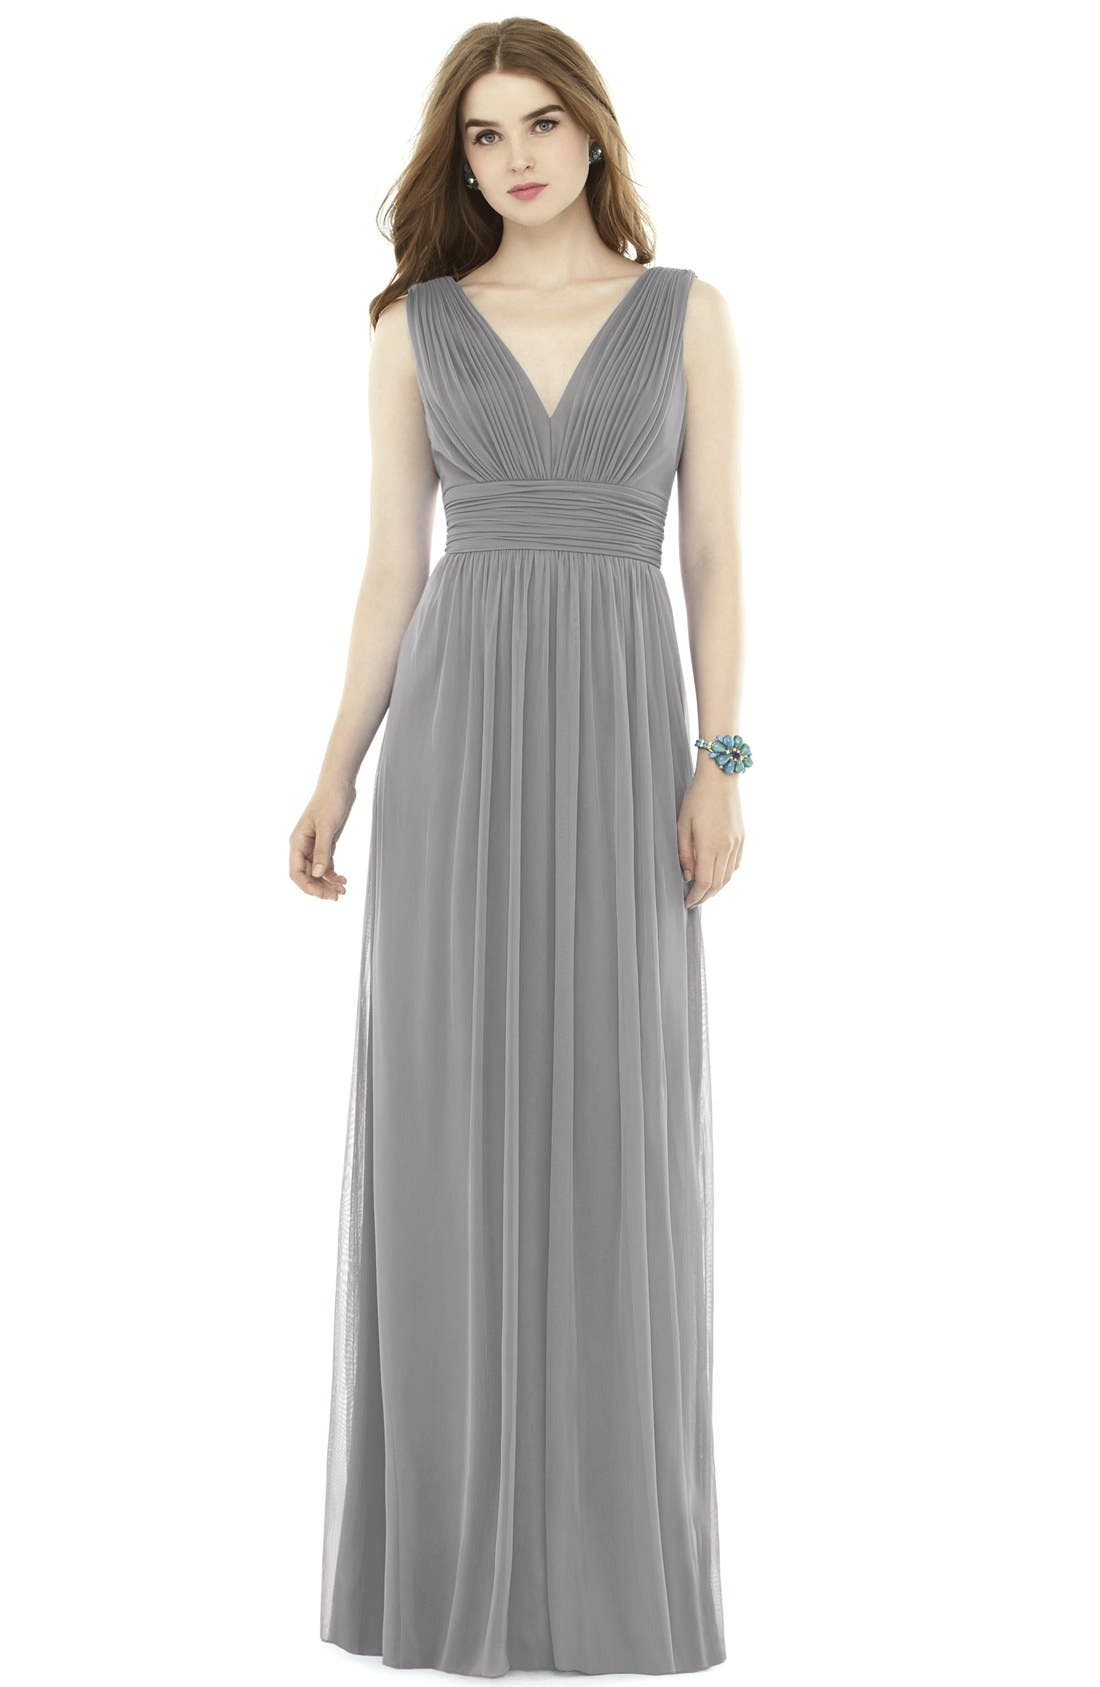 Main Image - Alfred Sung V-Neck Pleat Chiffon Knit A-Line Gown